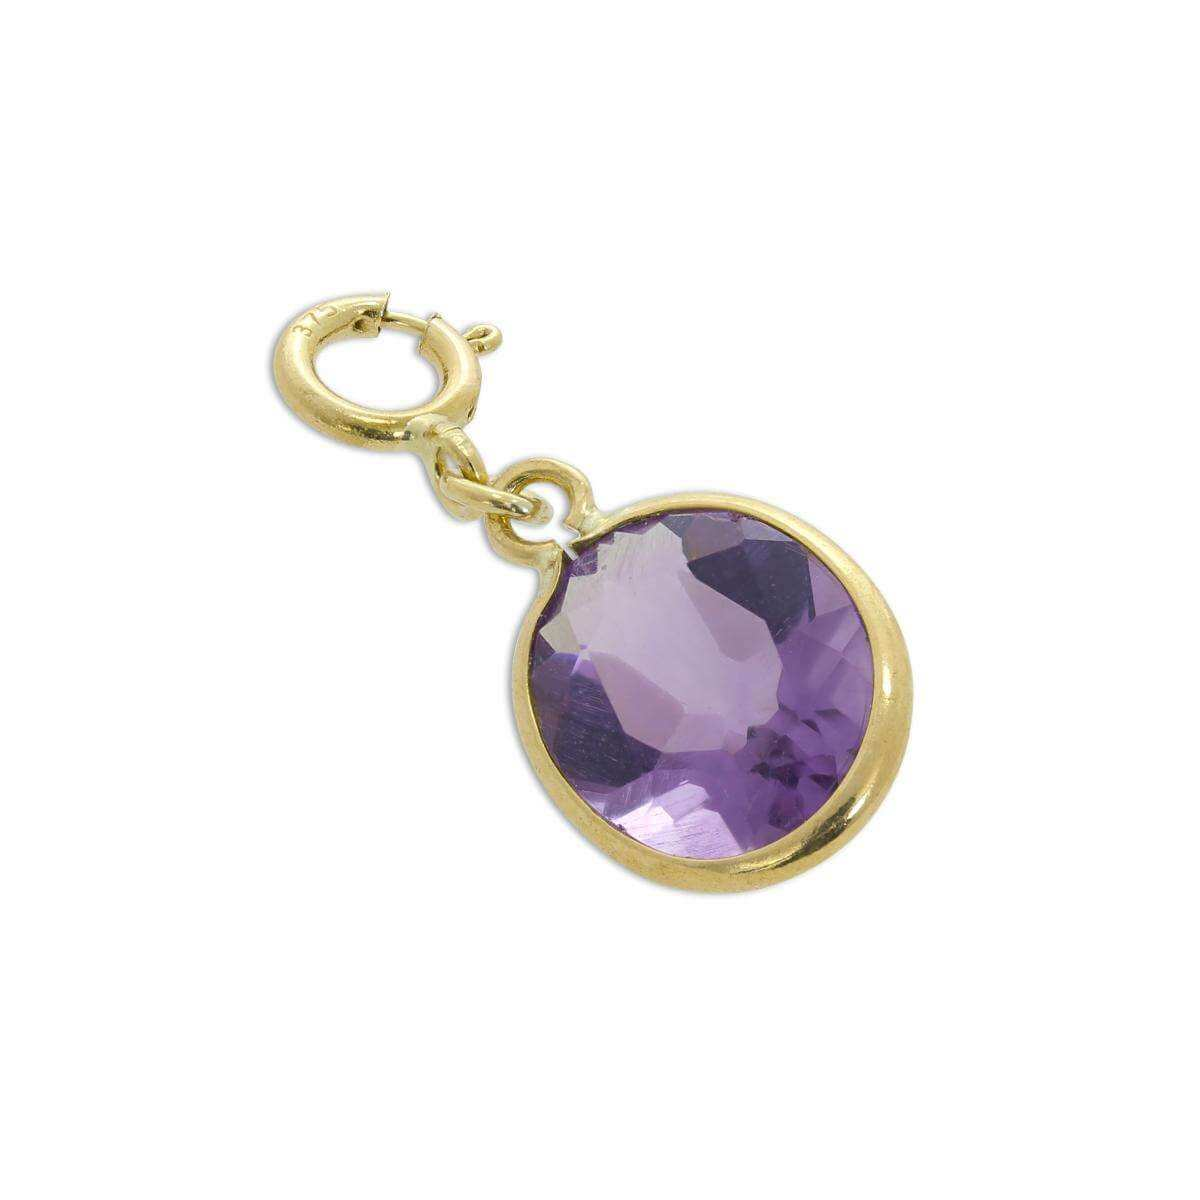 9ct Gold & Amethyst CZ Crystal Oval Clip on Charm